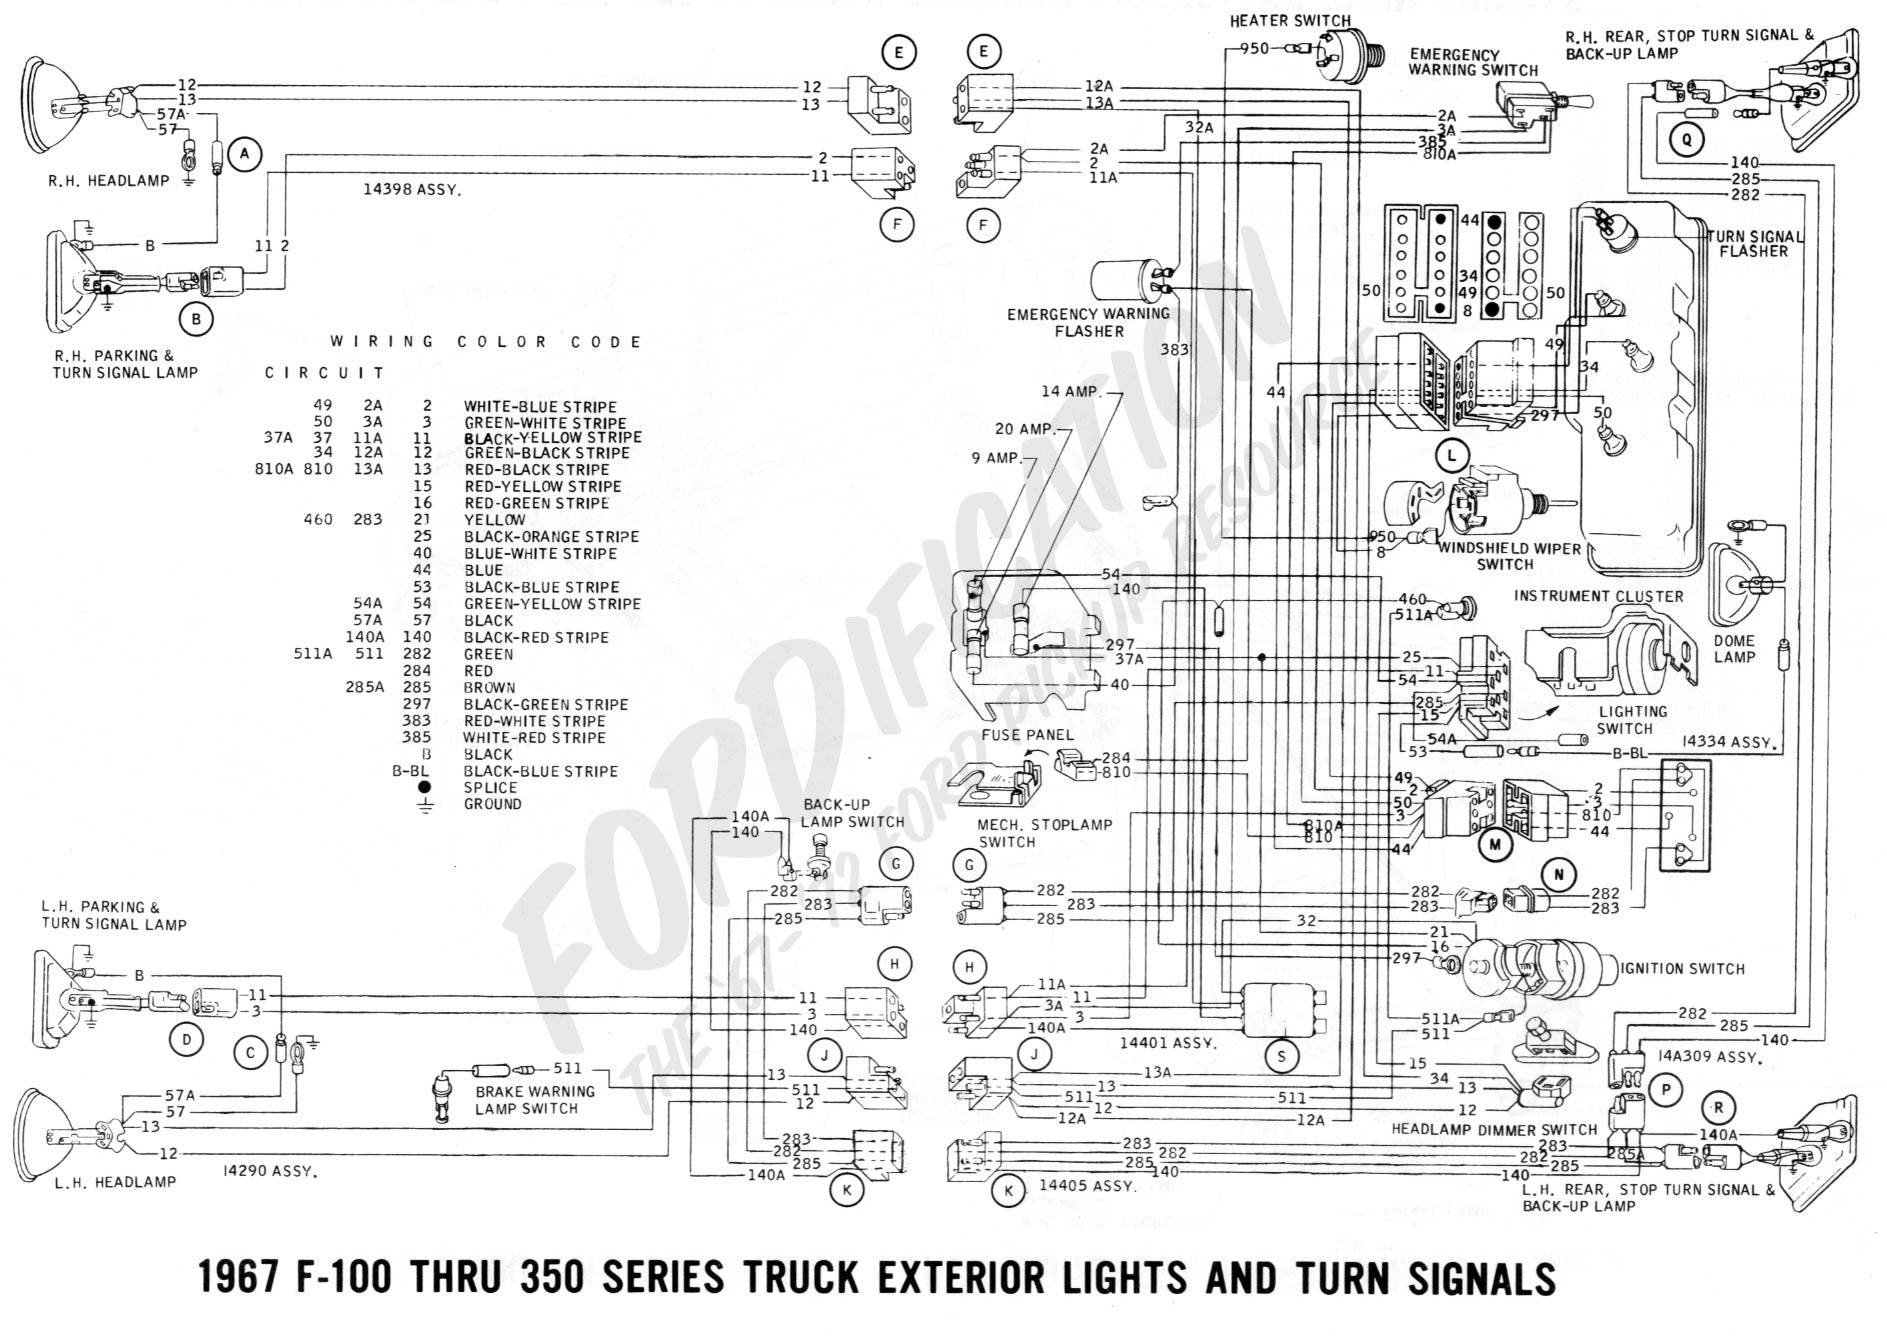 1960 ford f100 wiring data wiring diagram rh 4 6 mercedes aktion tesmer de